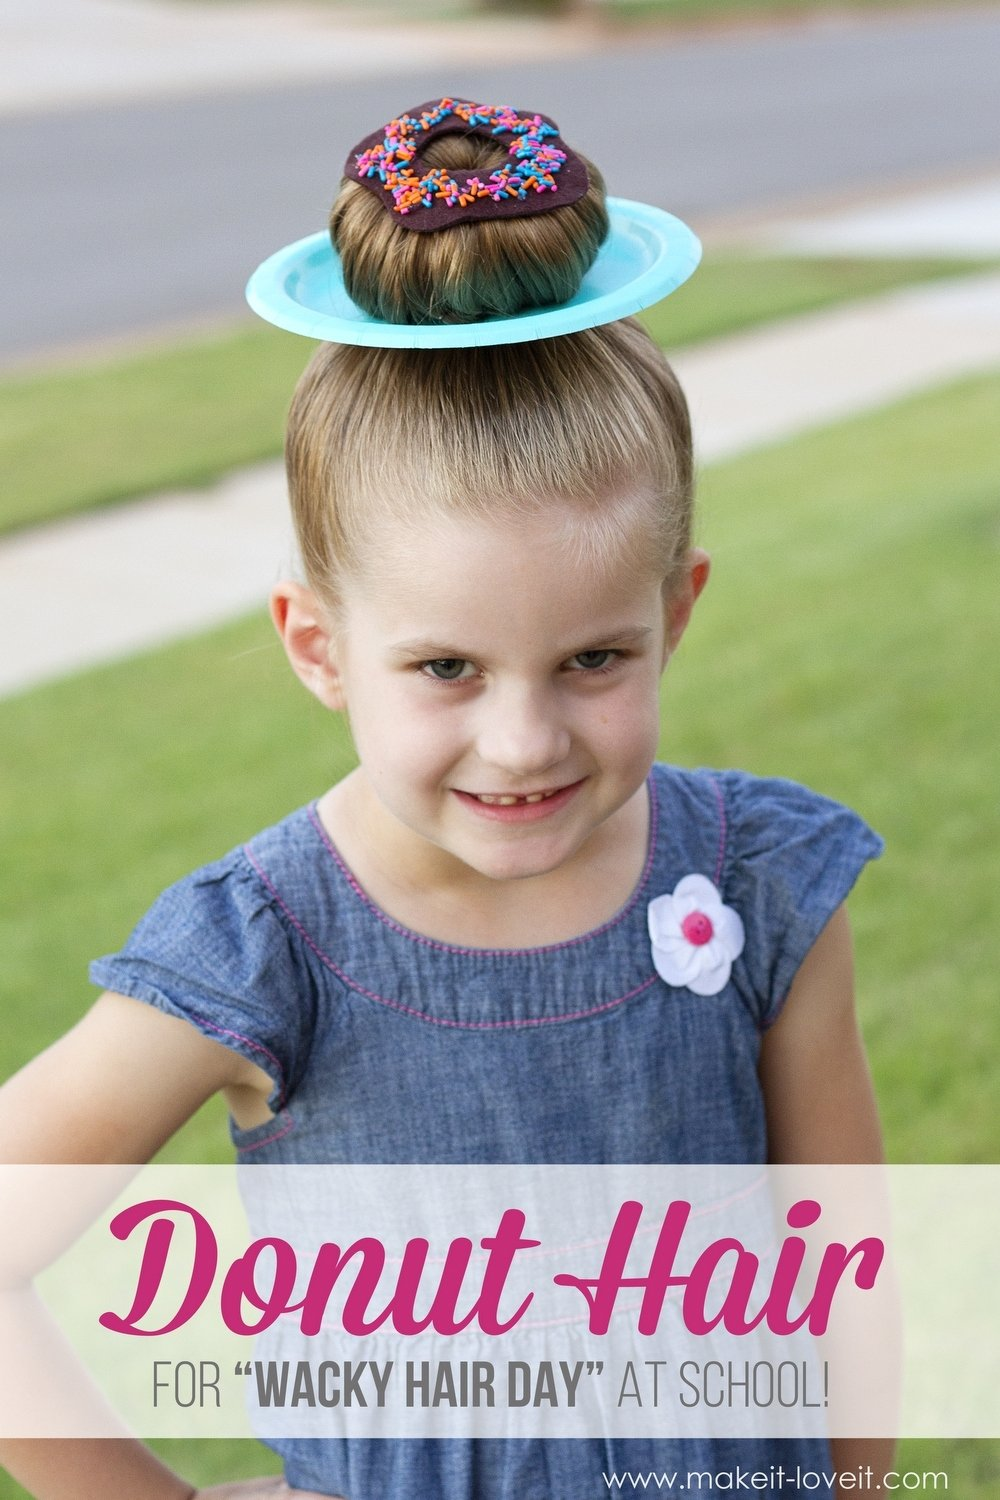 10 Famous Wacky Hair Day Ideas For School 25 clever ideas for wacky hair day at school including 5